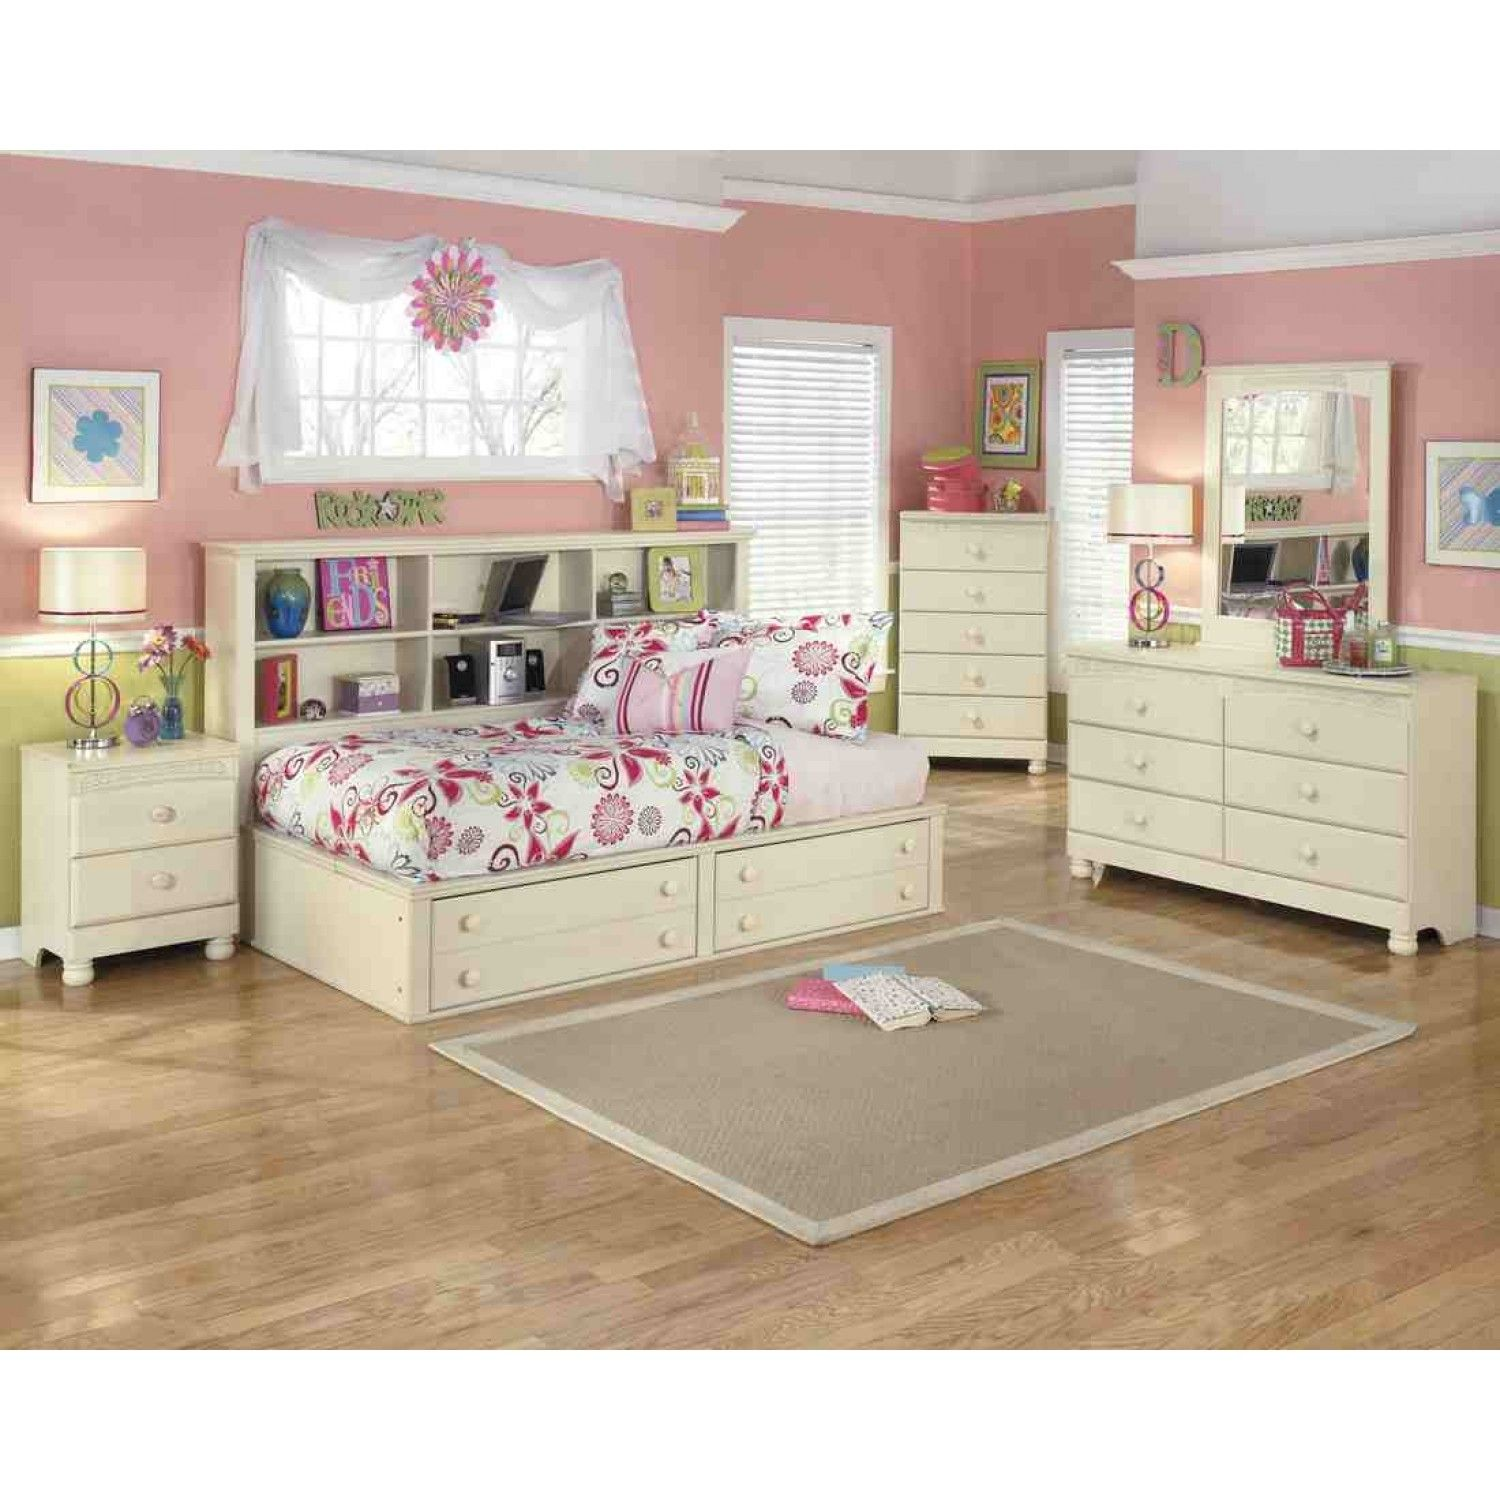 bedroom uncategorized ashley sets furniture size relax kids full play childrens gorgeous kid and